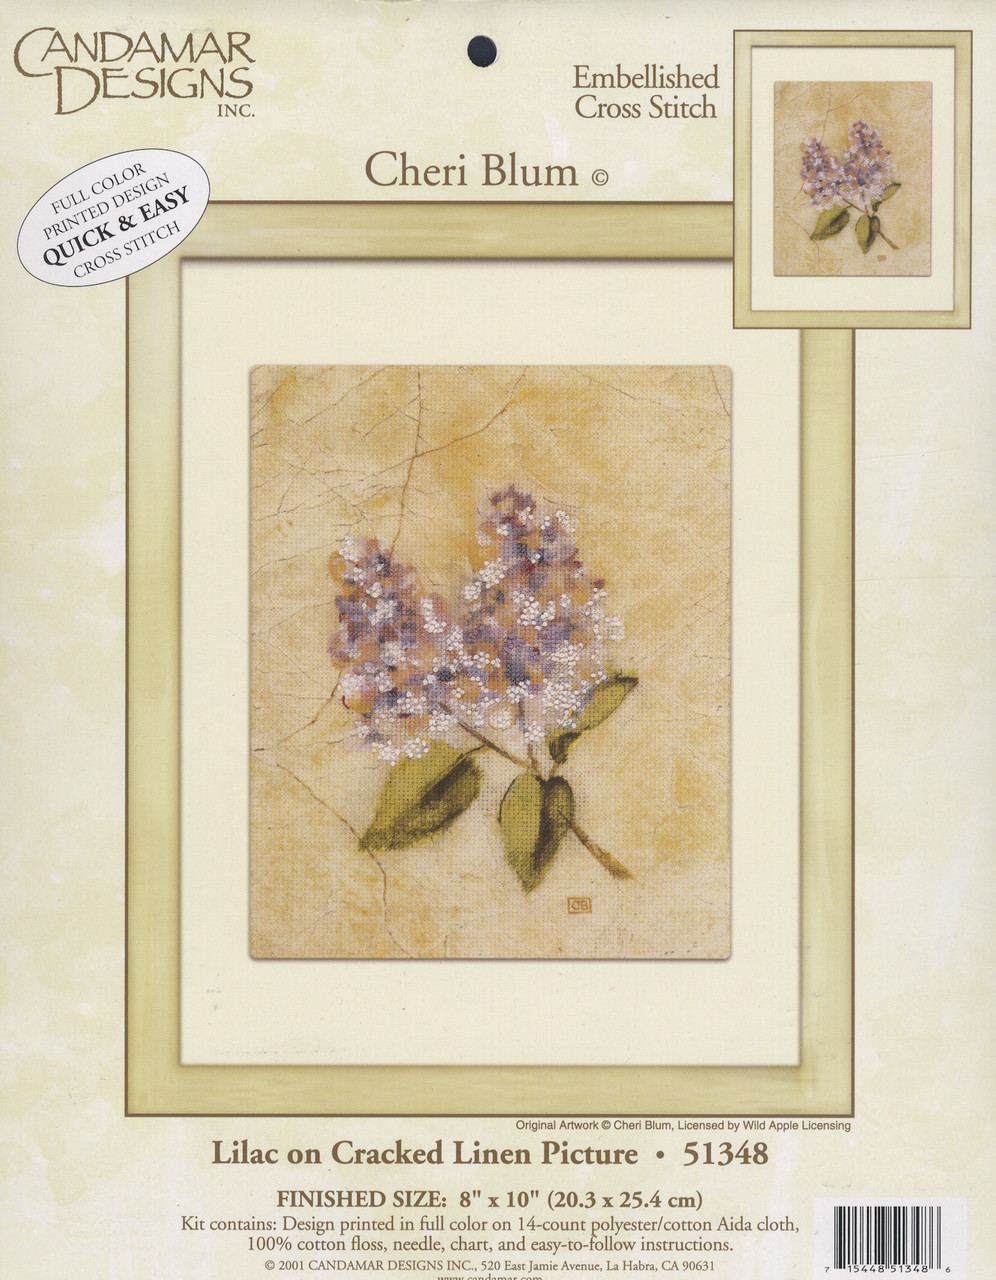 Candamar - Lilac on Cracked Linen